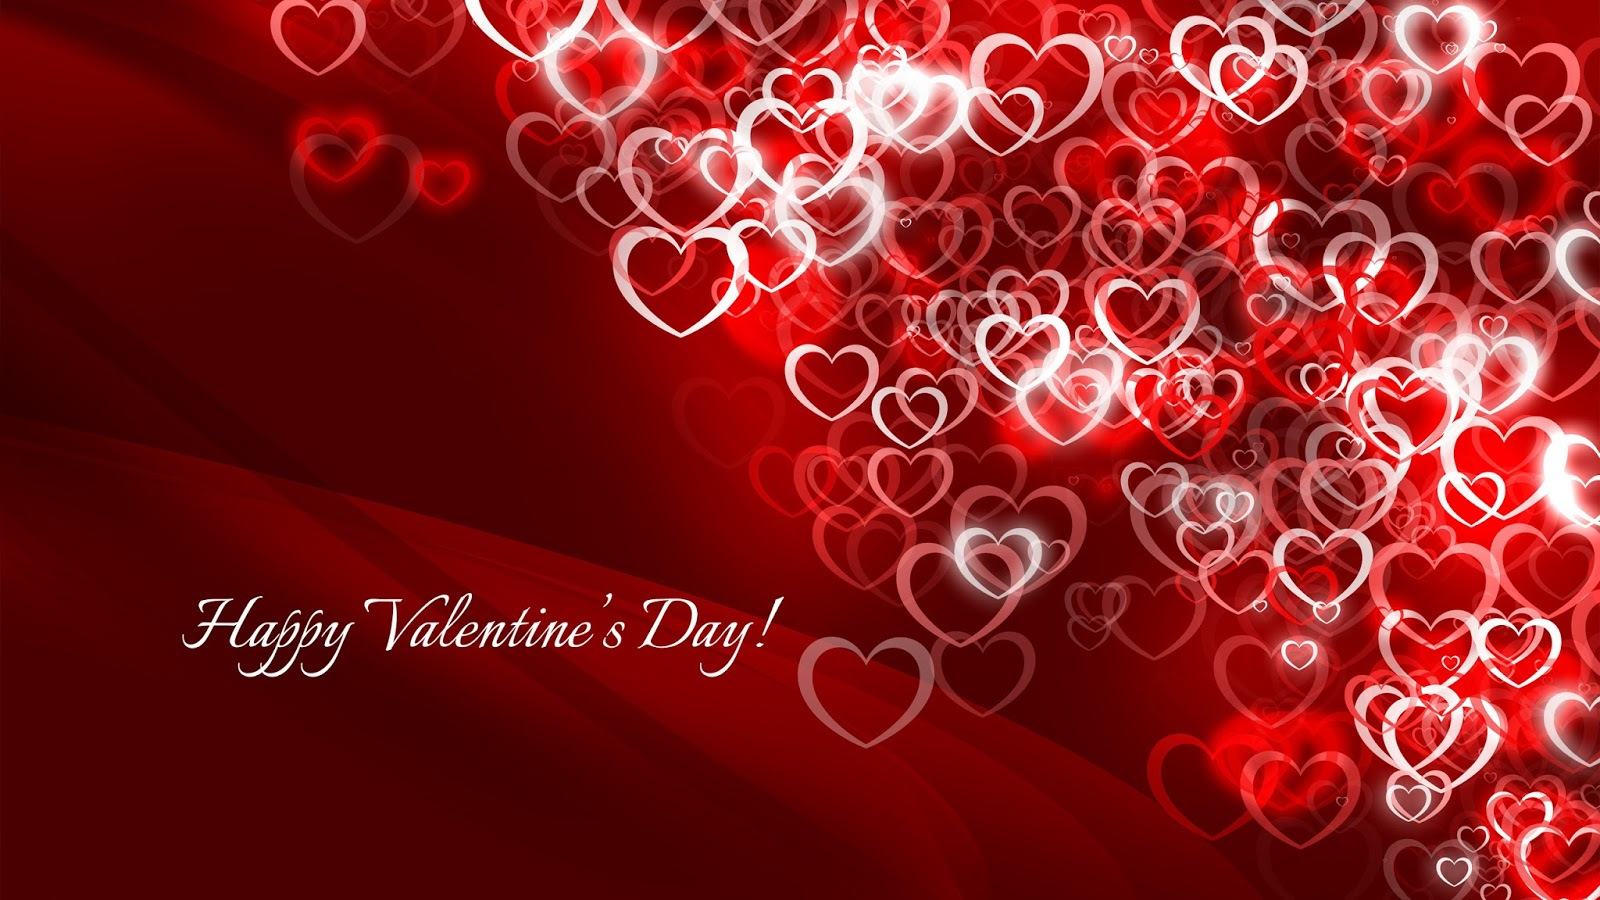 top 10 happy valentine's day hd images pictures and wallpaper